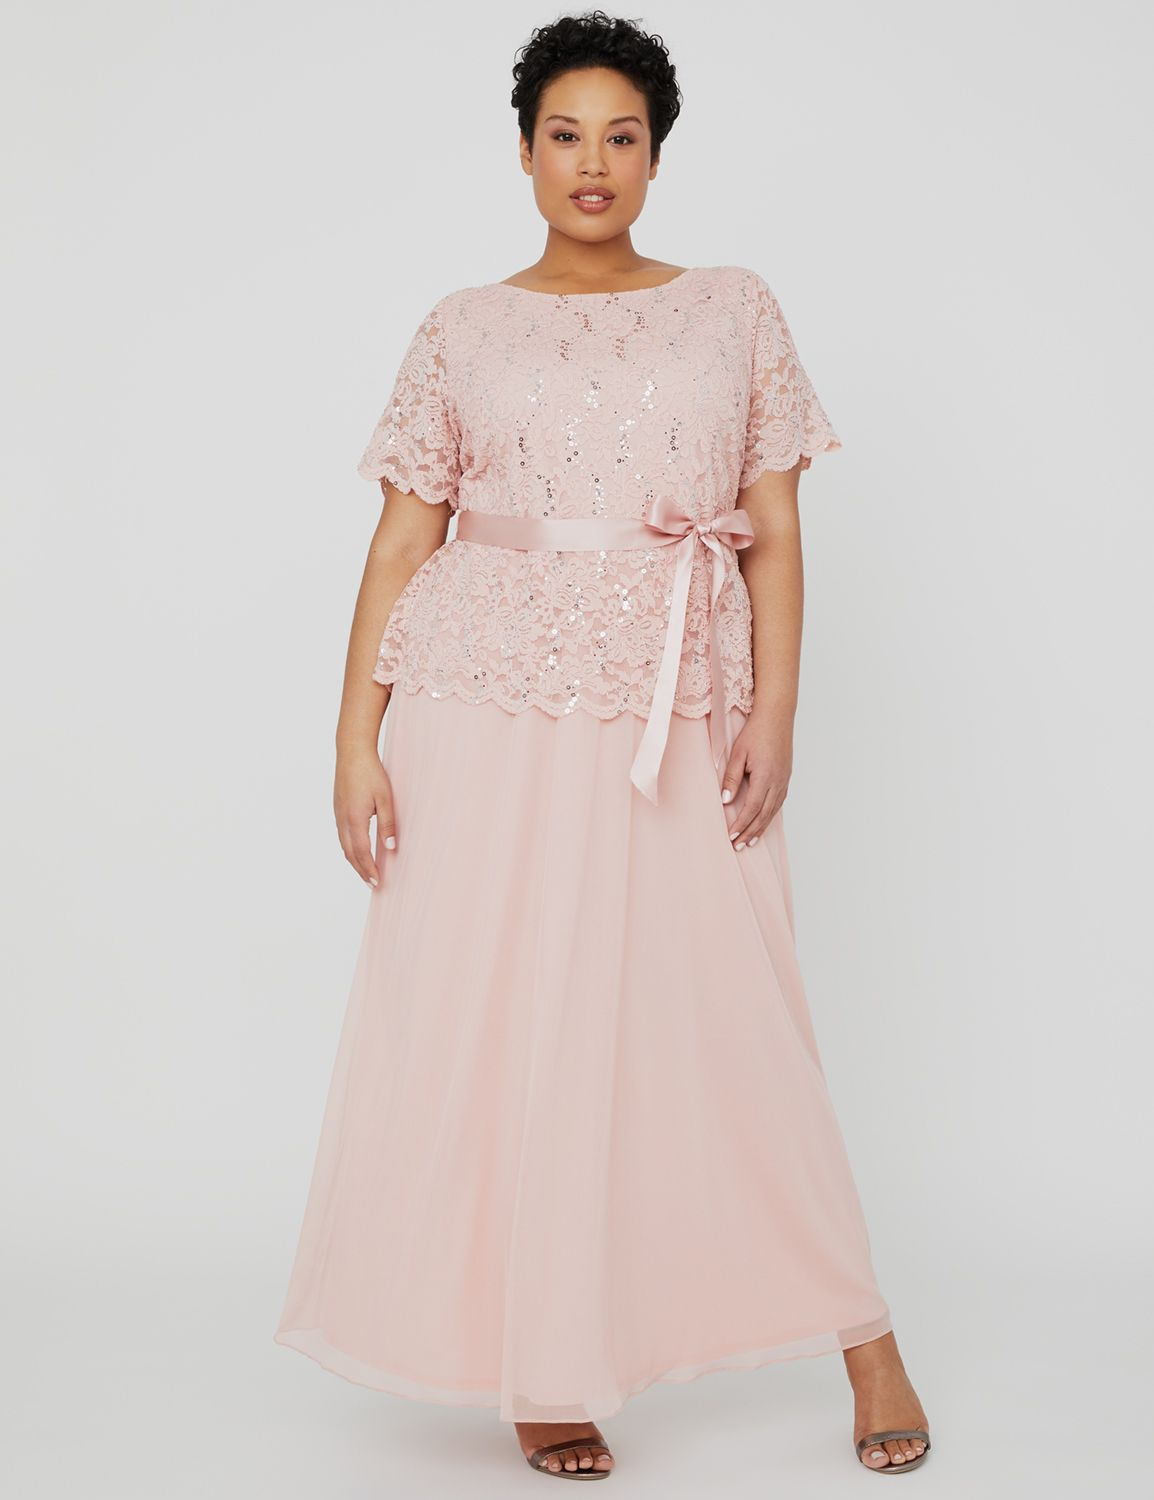 Blush Sunset Dress 1090995 Long Dress with Lace Bodice MP-300101537